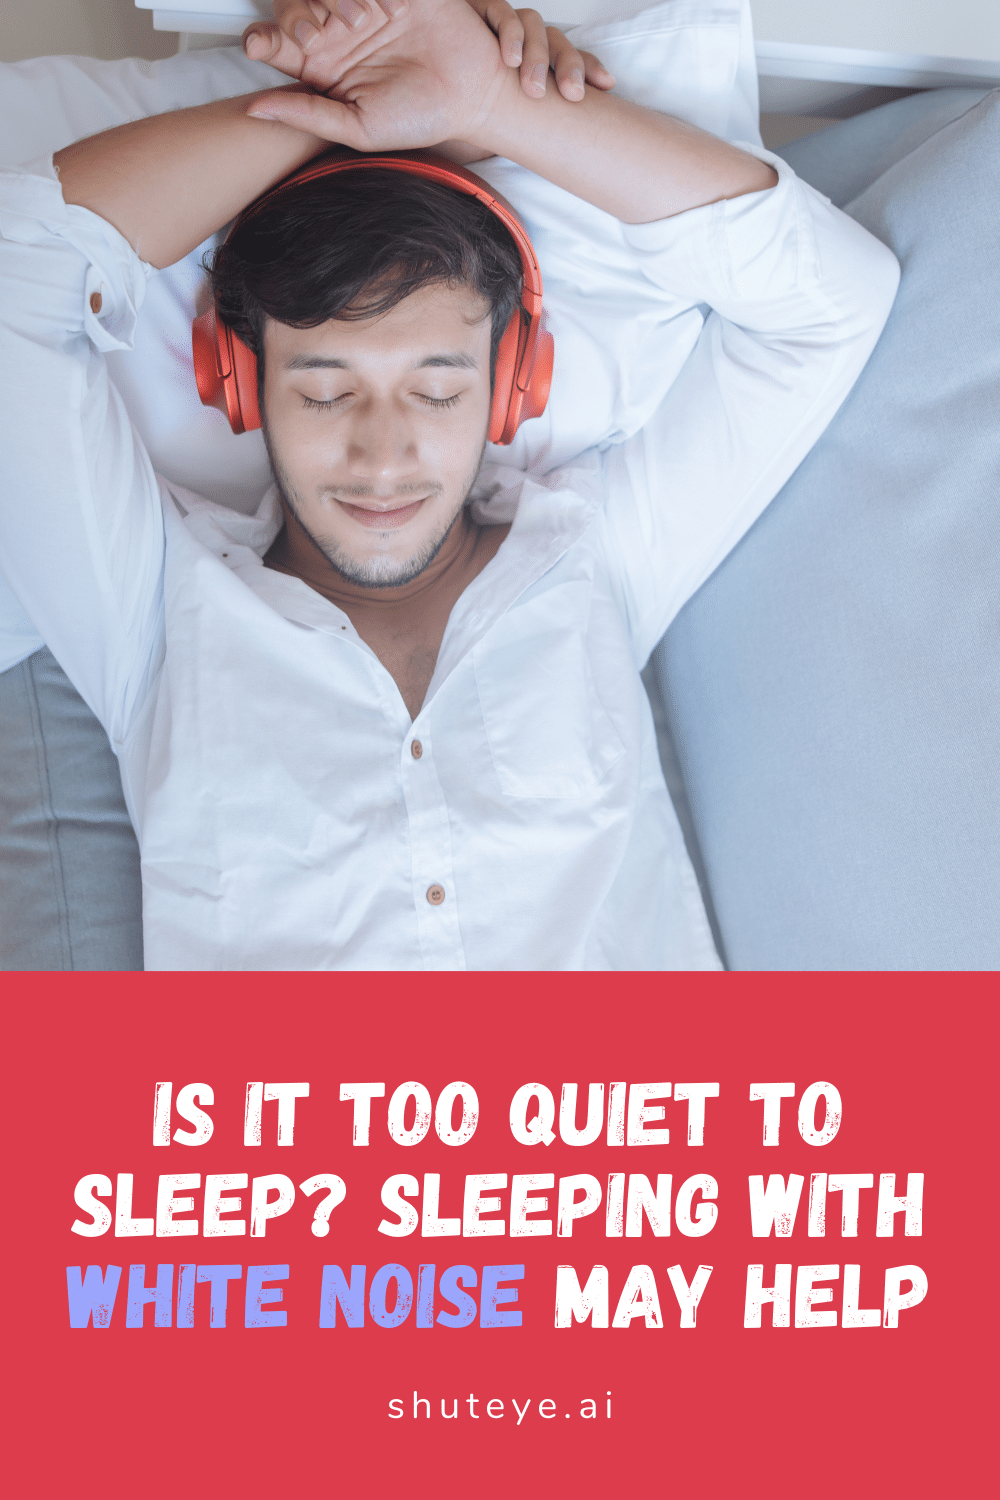 Is It Too Quiet to Sleep? Sleeping with White Noise May Help